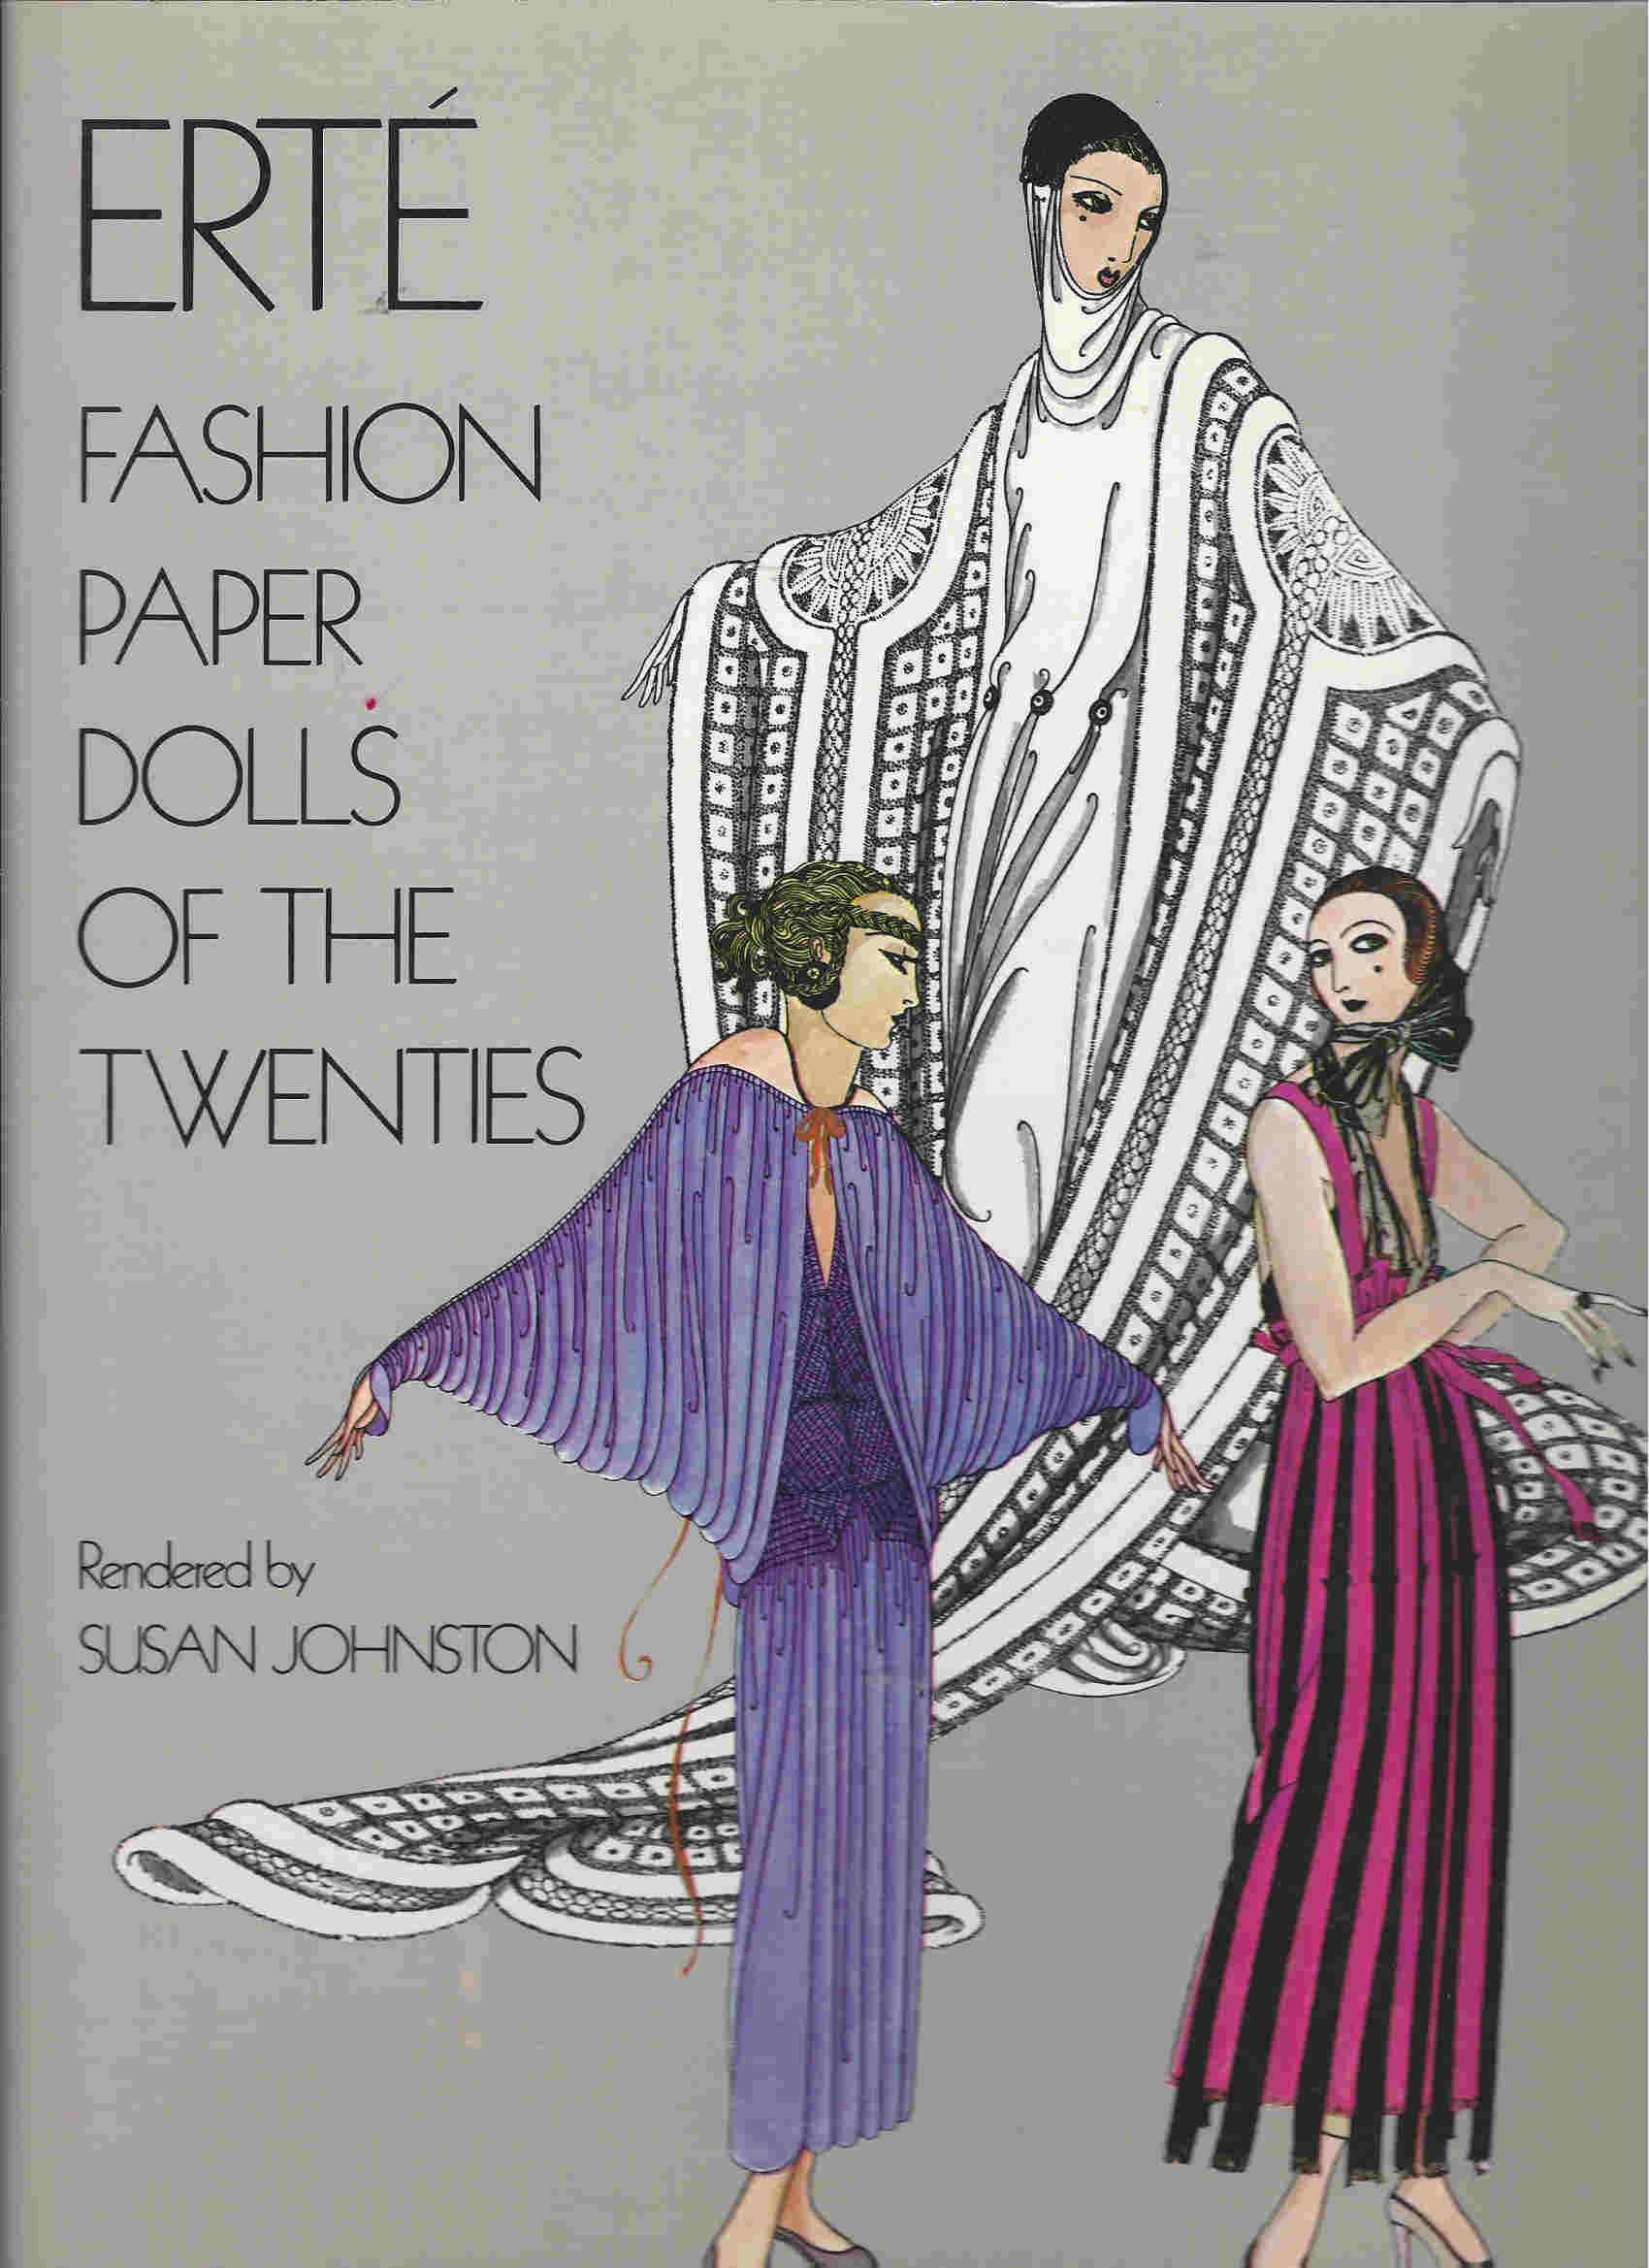 erte fashion paper dolls